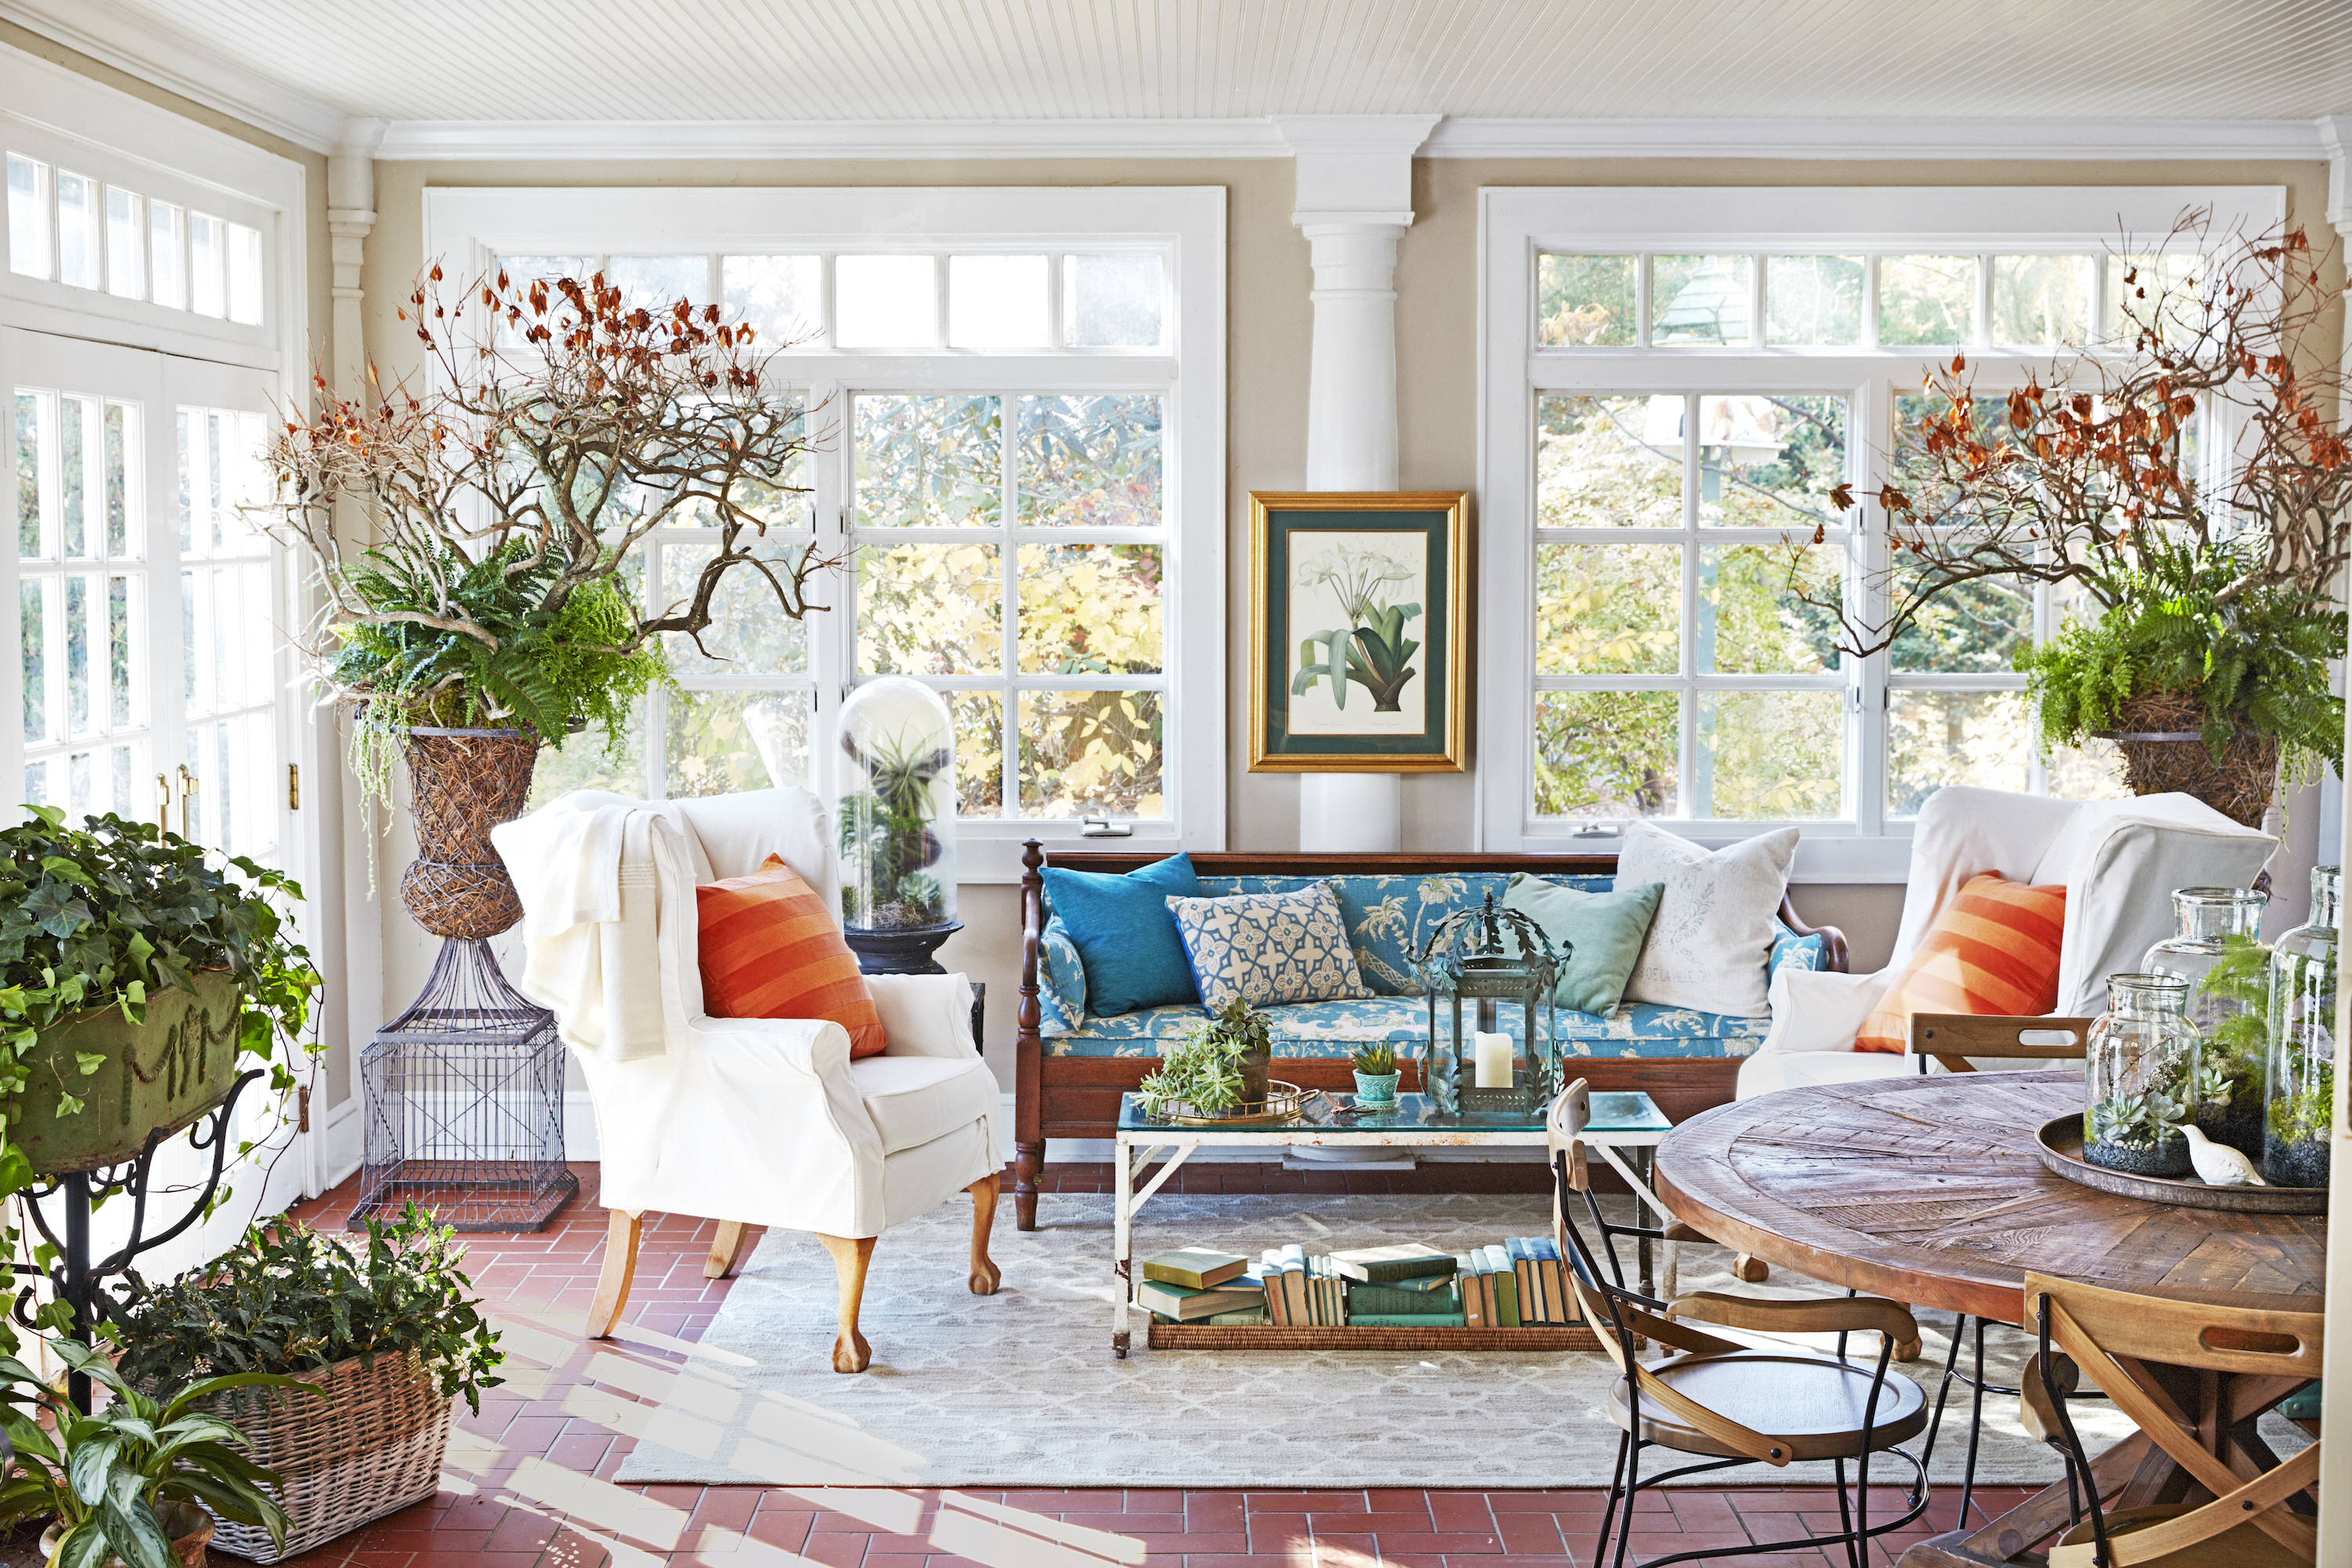 10 sunroom decorating ideas best designs for sun rooms for Sunroom garden room